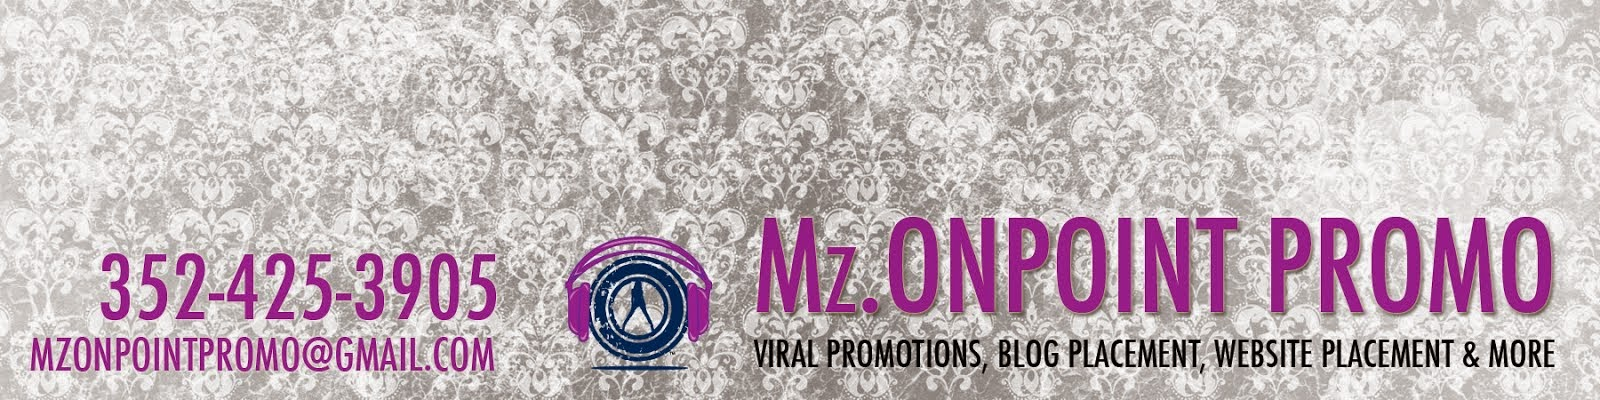 Mz On Point Promo